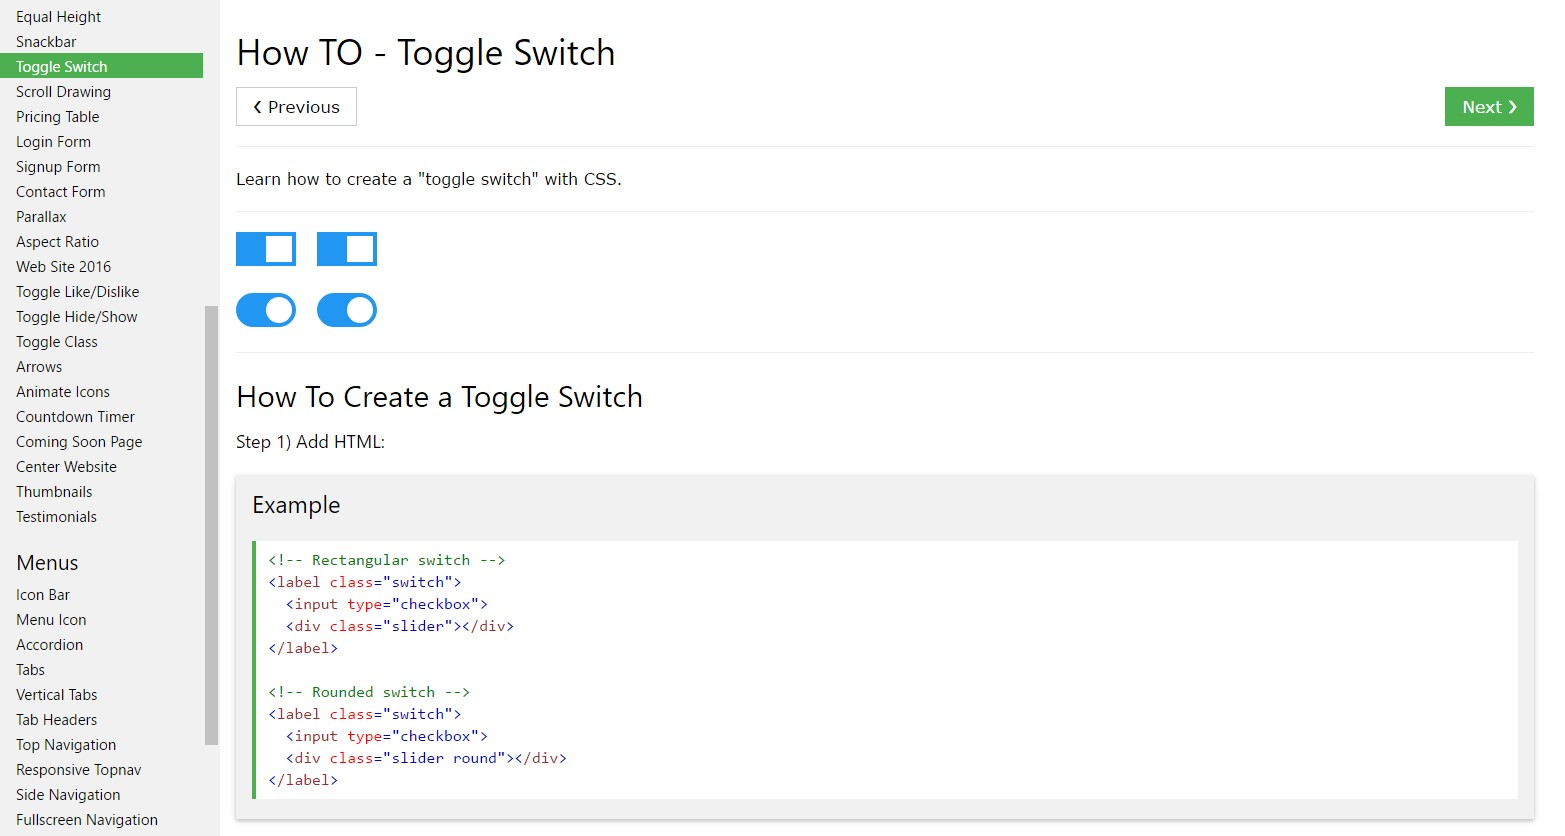 Effective ways to create Toggle Switch